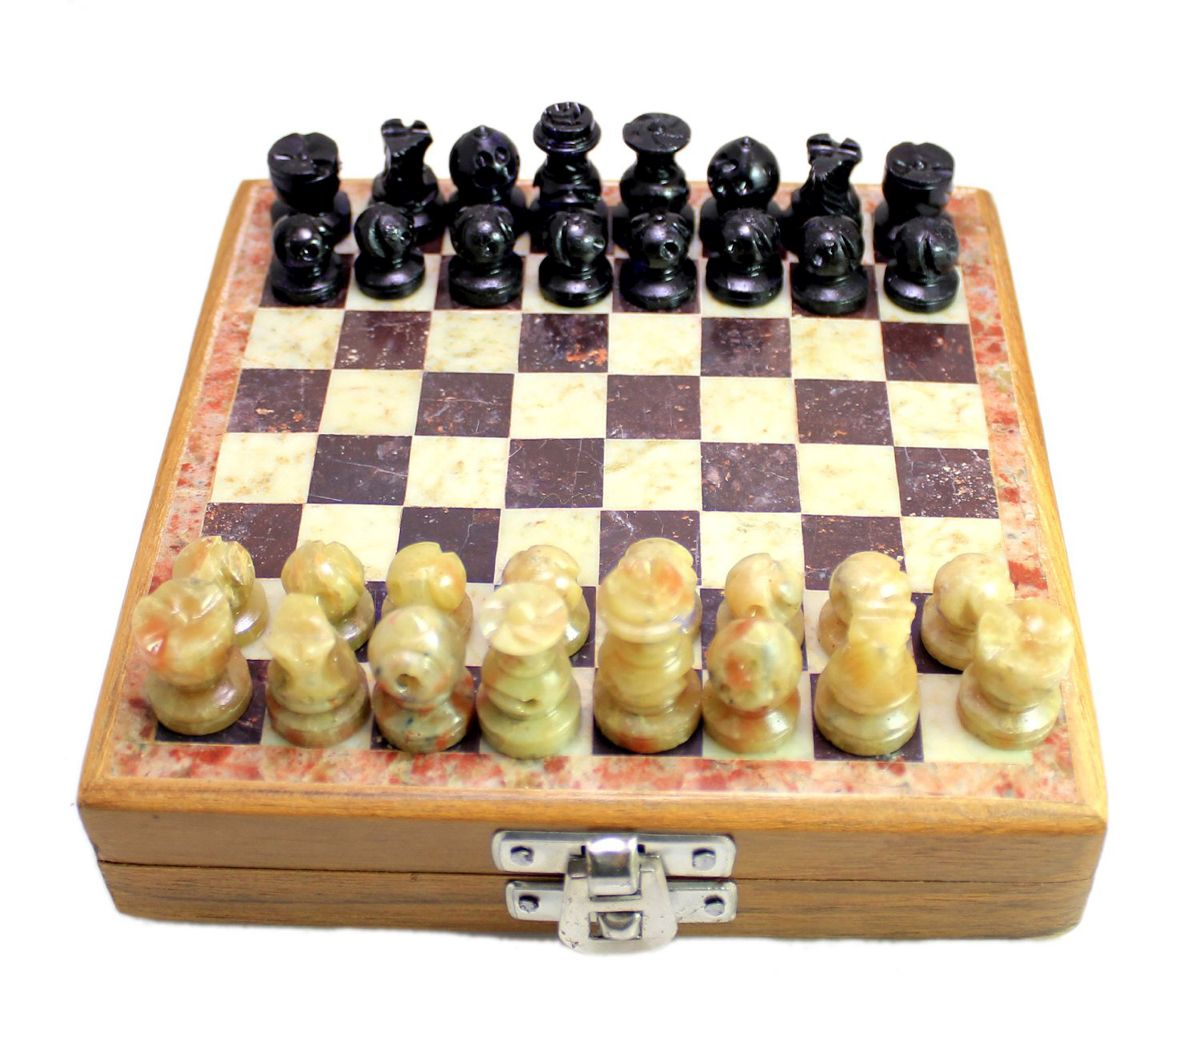 Chess Boards Cheap Buy Classic Chess Inlaid Wood Board Game With Wooden Chess